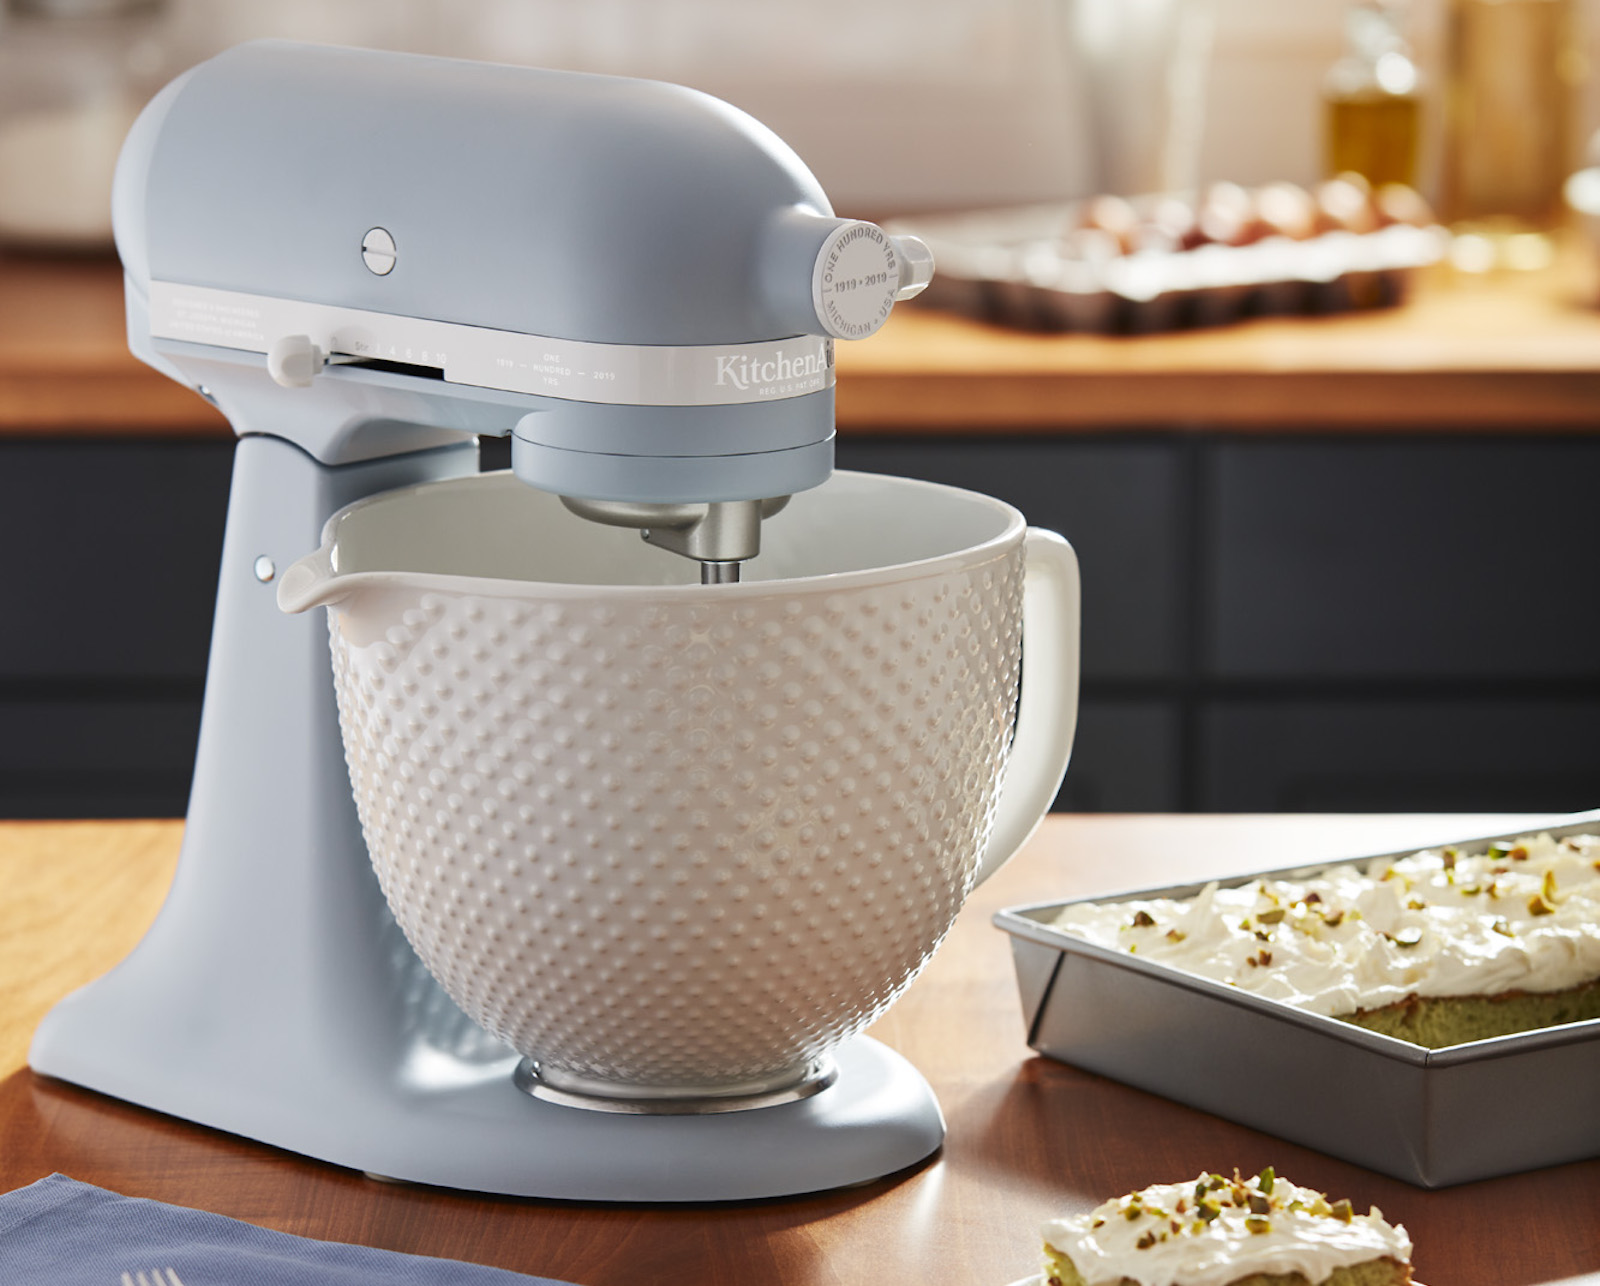 KitchenAid Just Released a Retro-Inspired Mixer Color to Celebrate the Brand's 100th Anniversary